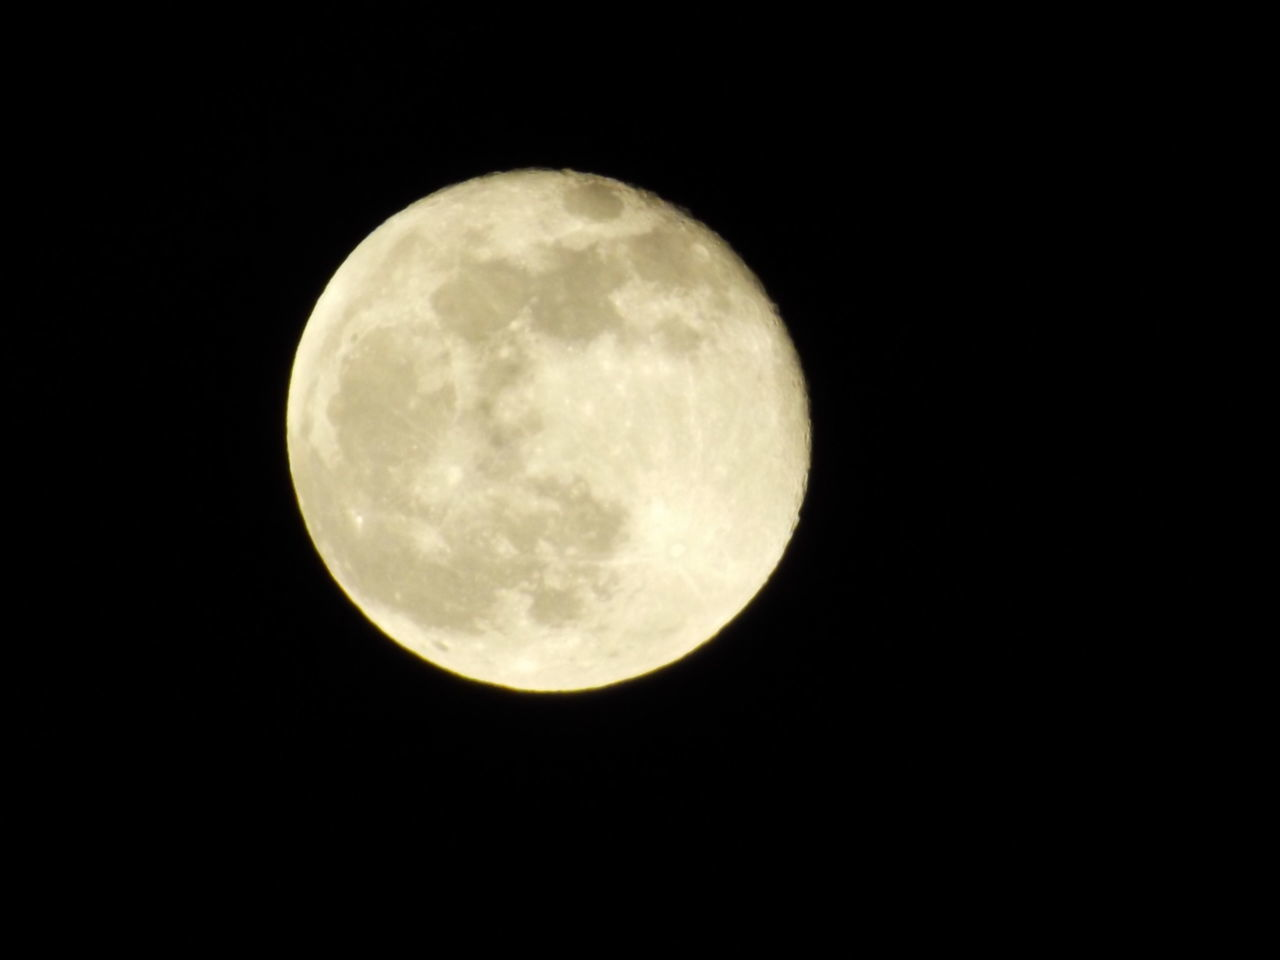 moon, night, astronomy, moon surface, beauty in nature, planetary moon, full moon, nature, majestic, circle, tranquility, scenics, space exploration, low angle view, tranquil scene, idyllic, outdoors, no people, clear sky, space, half moon, moonlight, sky, close-up, satellite view